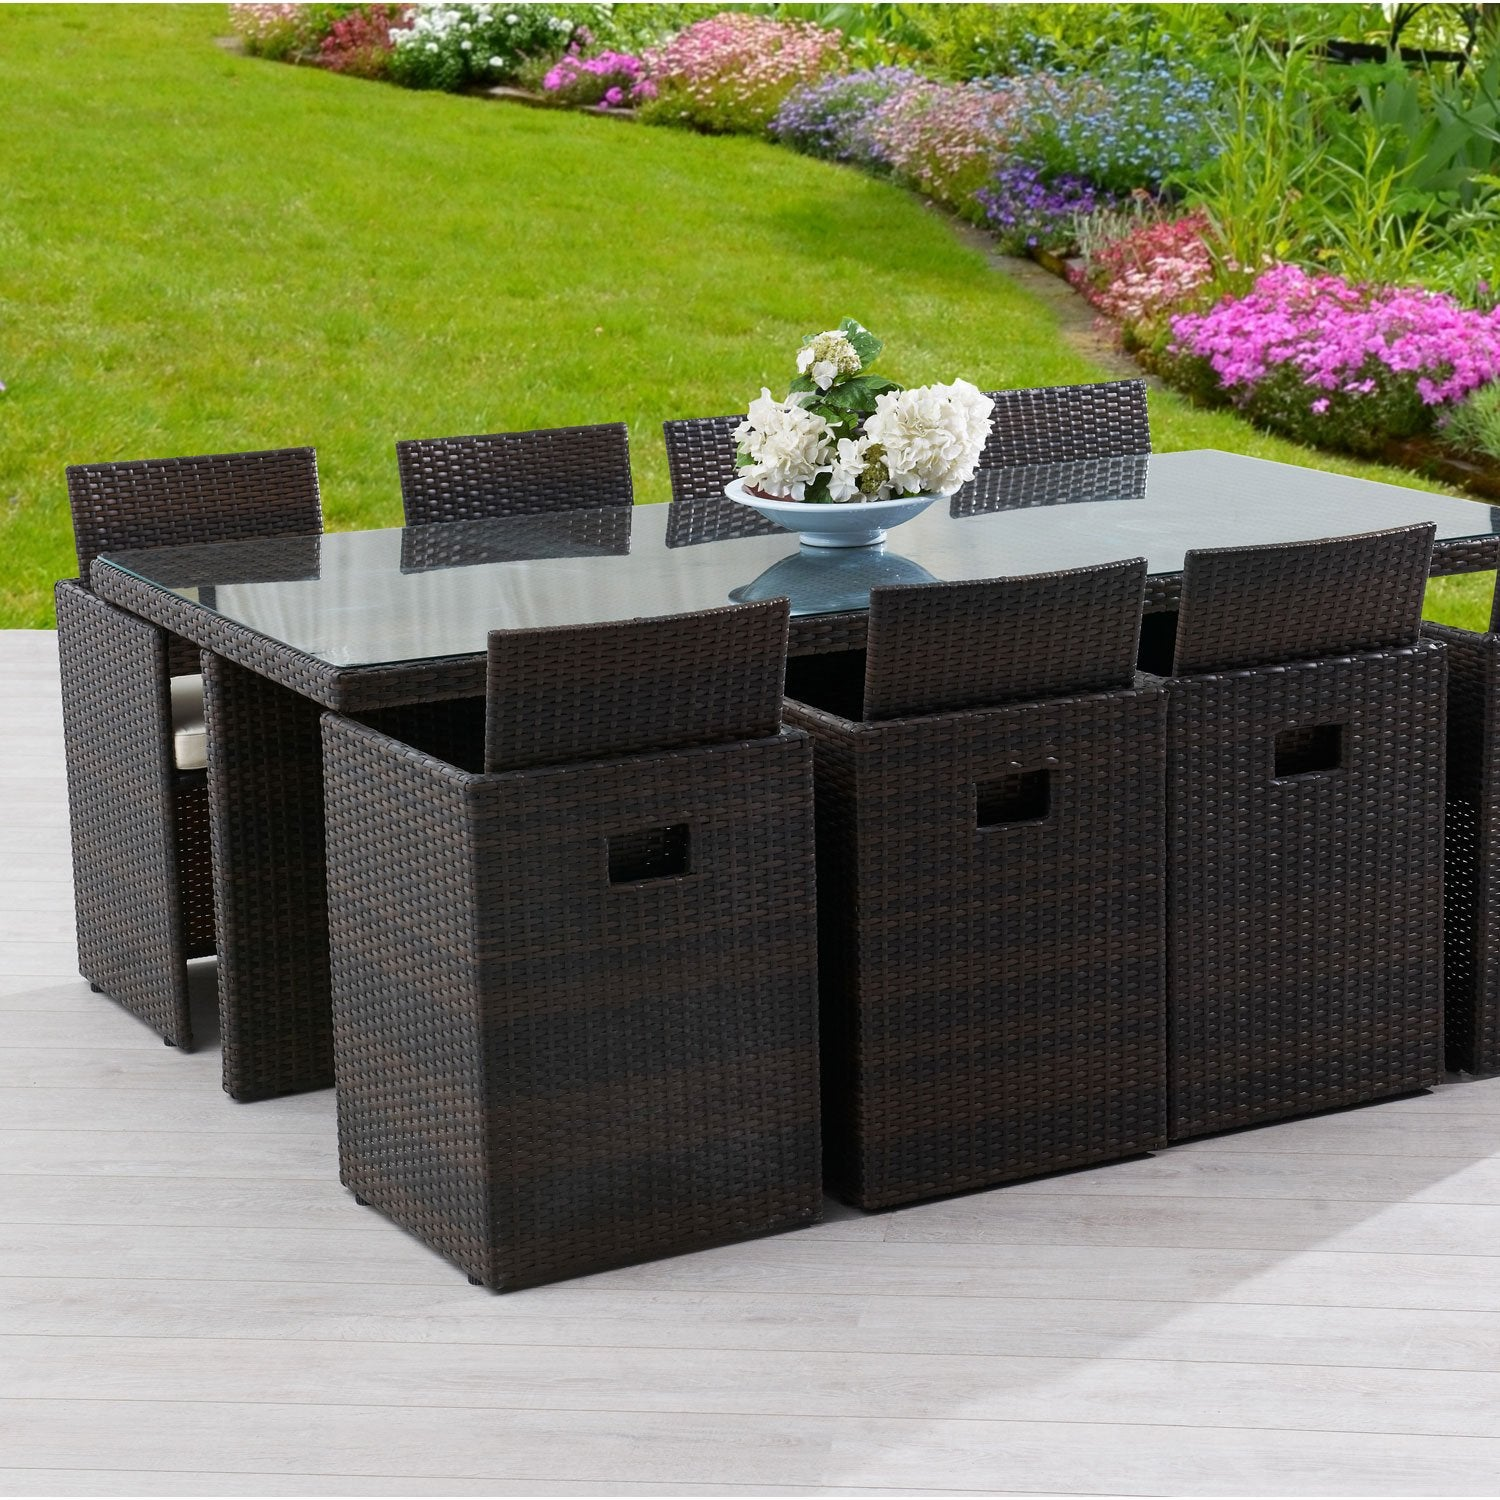 Salon de jardin encastrable r sine tress e marron 1 table - Salon jardin soldes ...